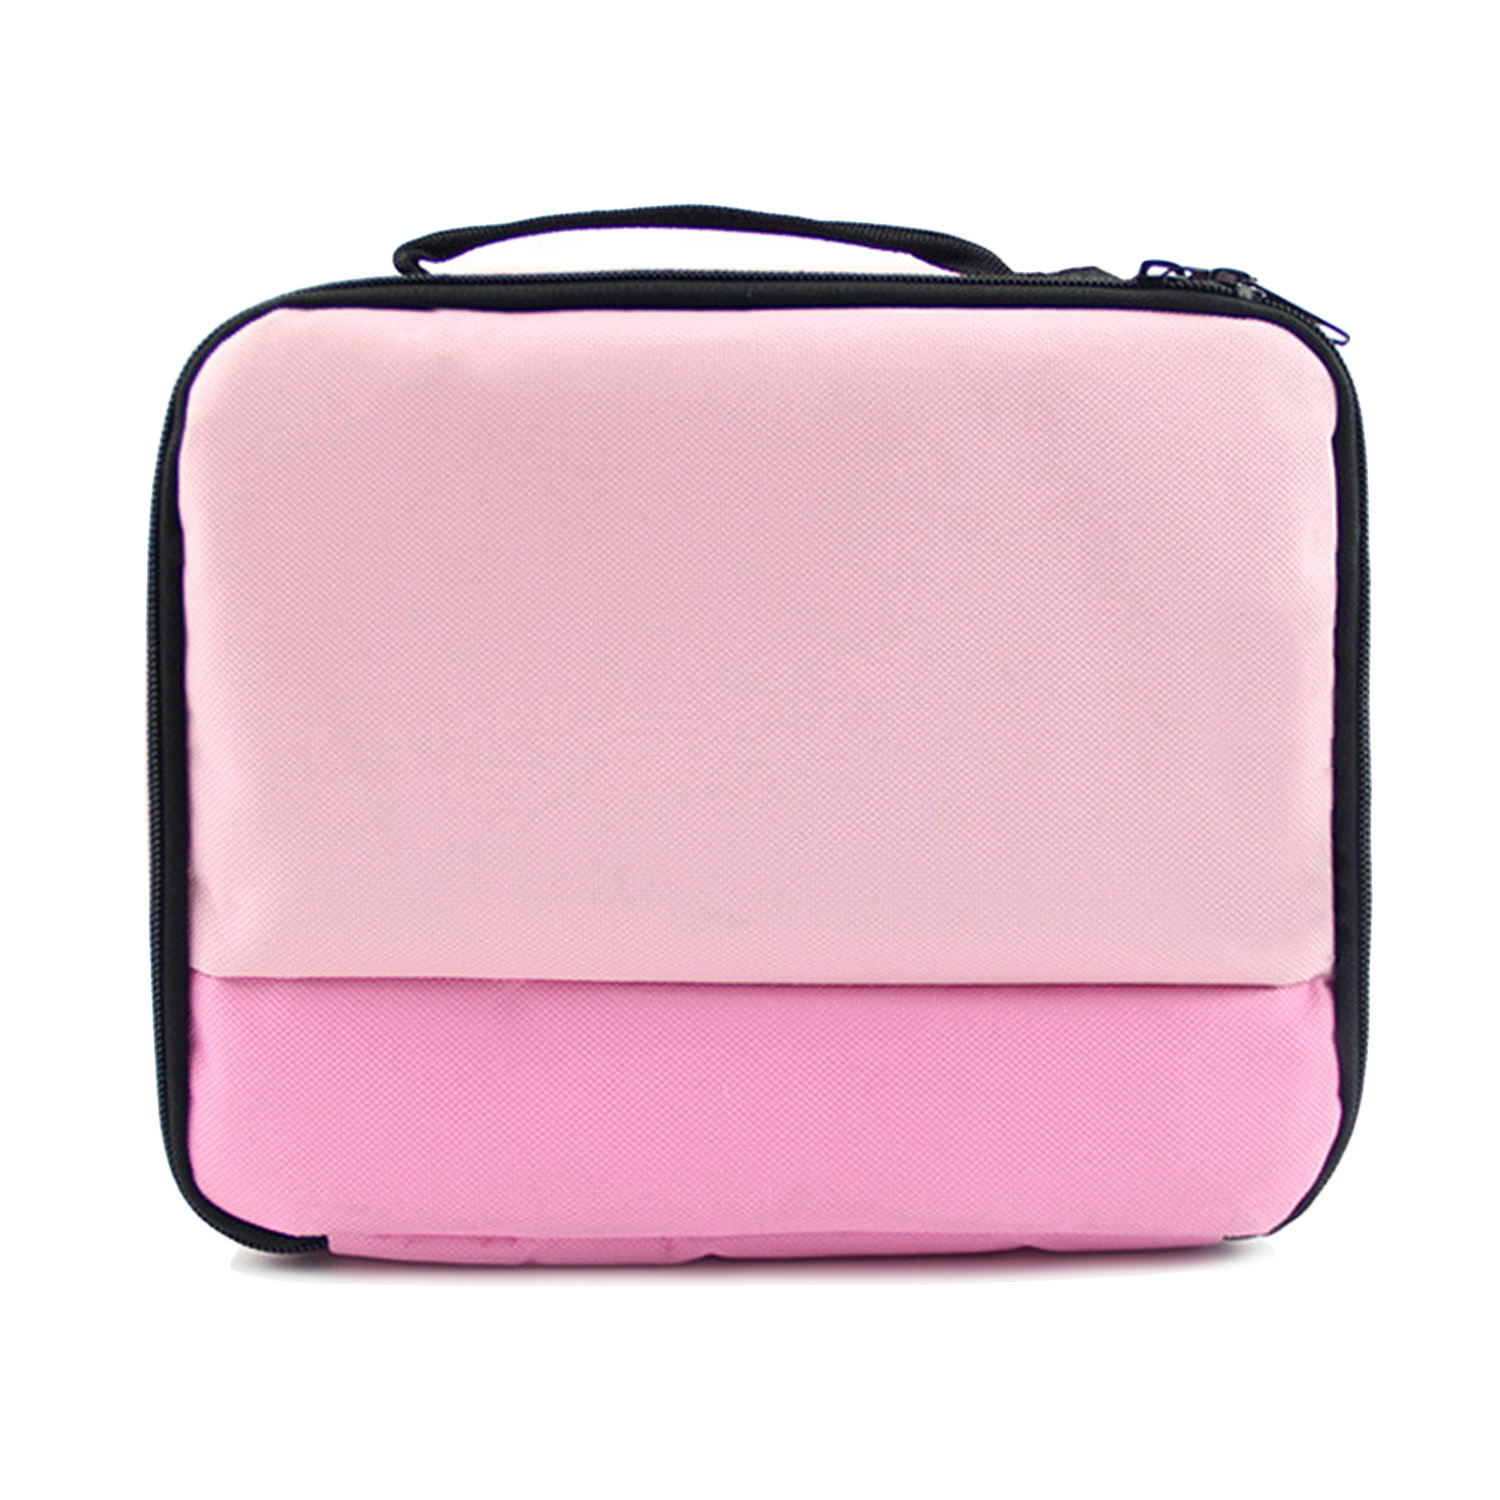 Universal Portable Travel Carry Storage Protector Bag Protection Handbag Case for Canon Selphy CP1200 CP910 HITI Prinhome P310W Photo Printer (Grey/Pink) - intl